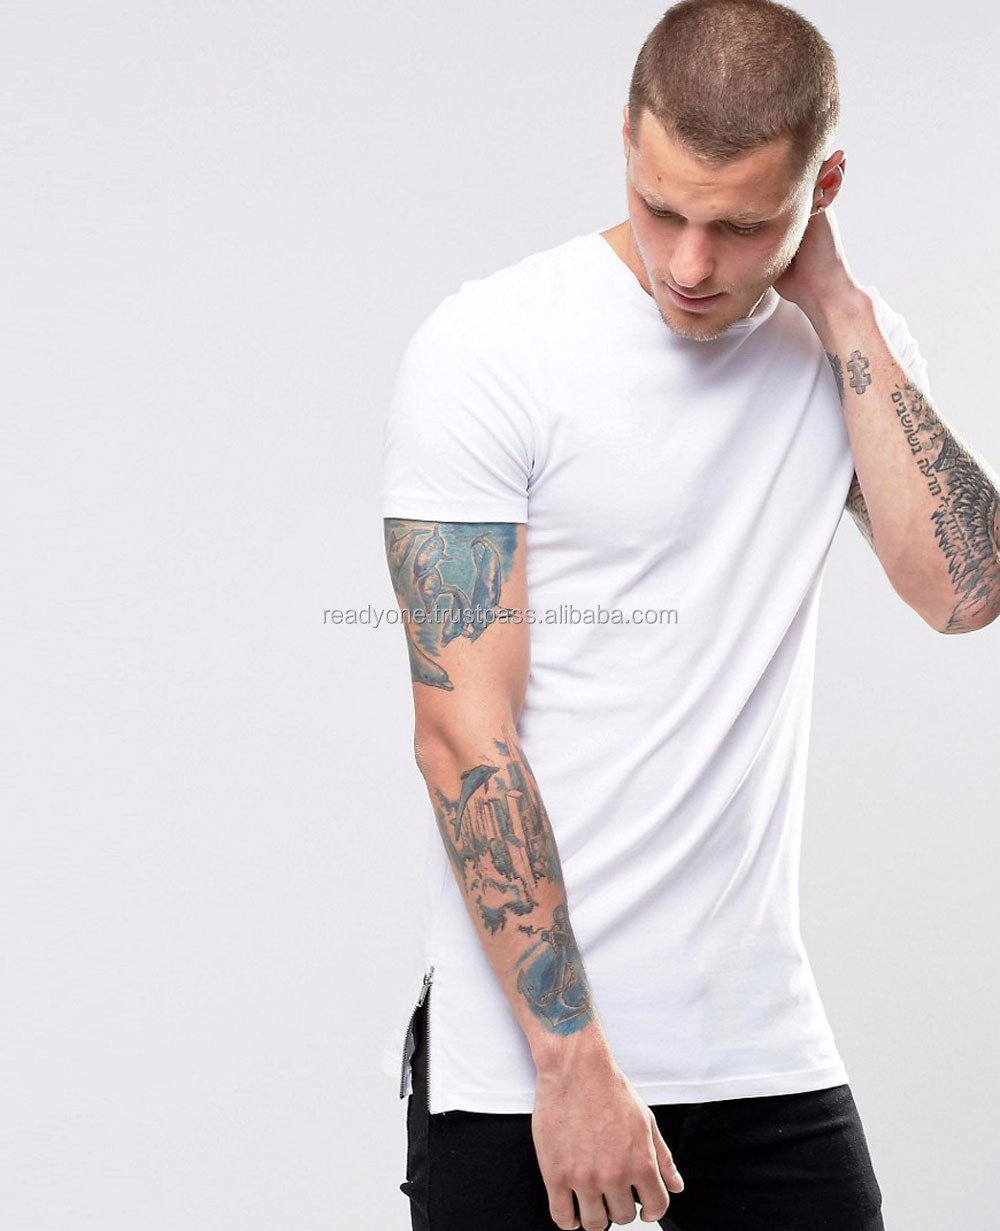 Fashion Wholesale Compression tee shirt wholesale hot sale trendy customized t shirt